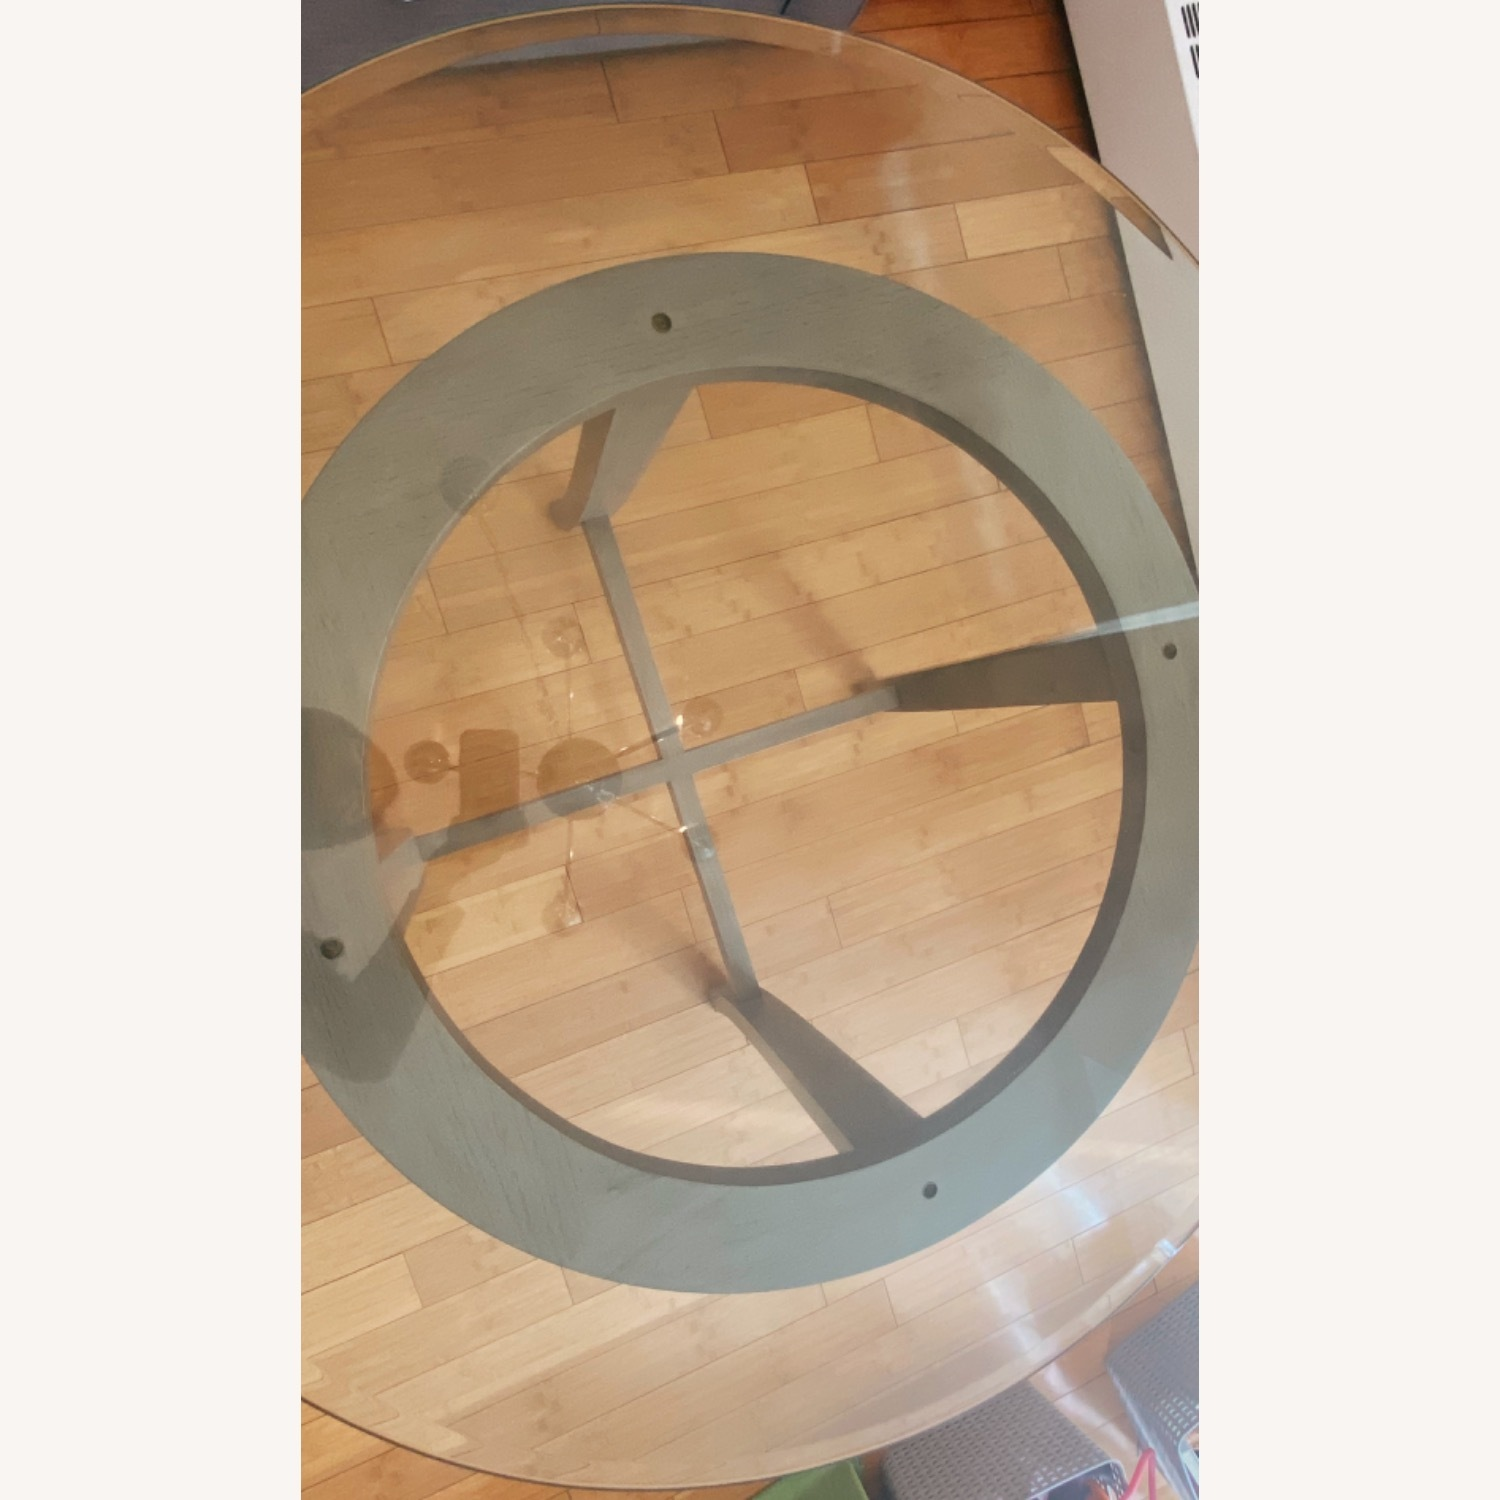 Crate and Barrel Round Glass Dining Table - image-3